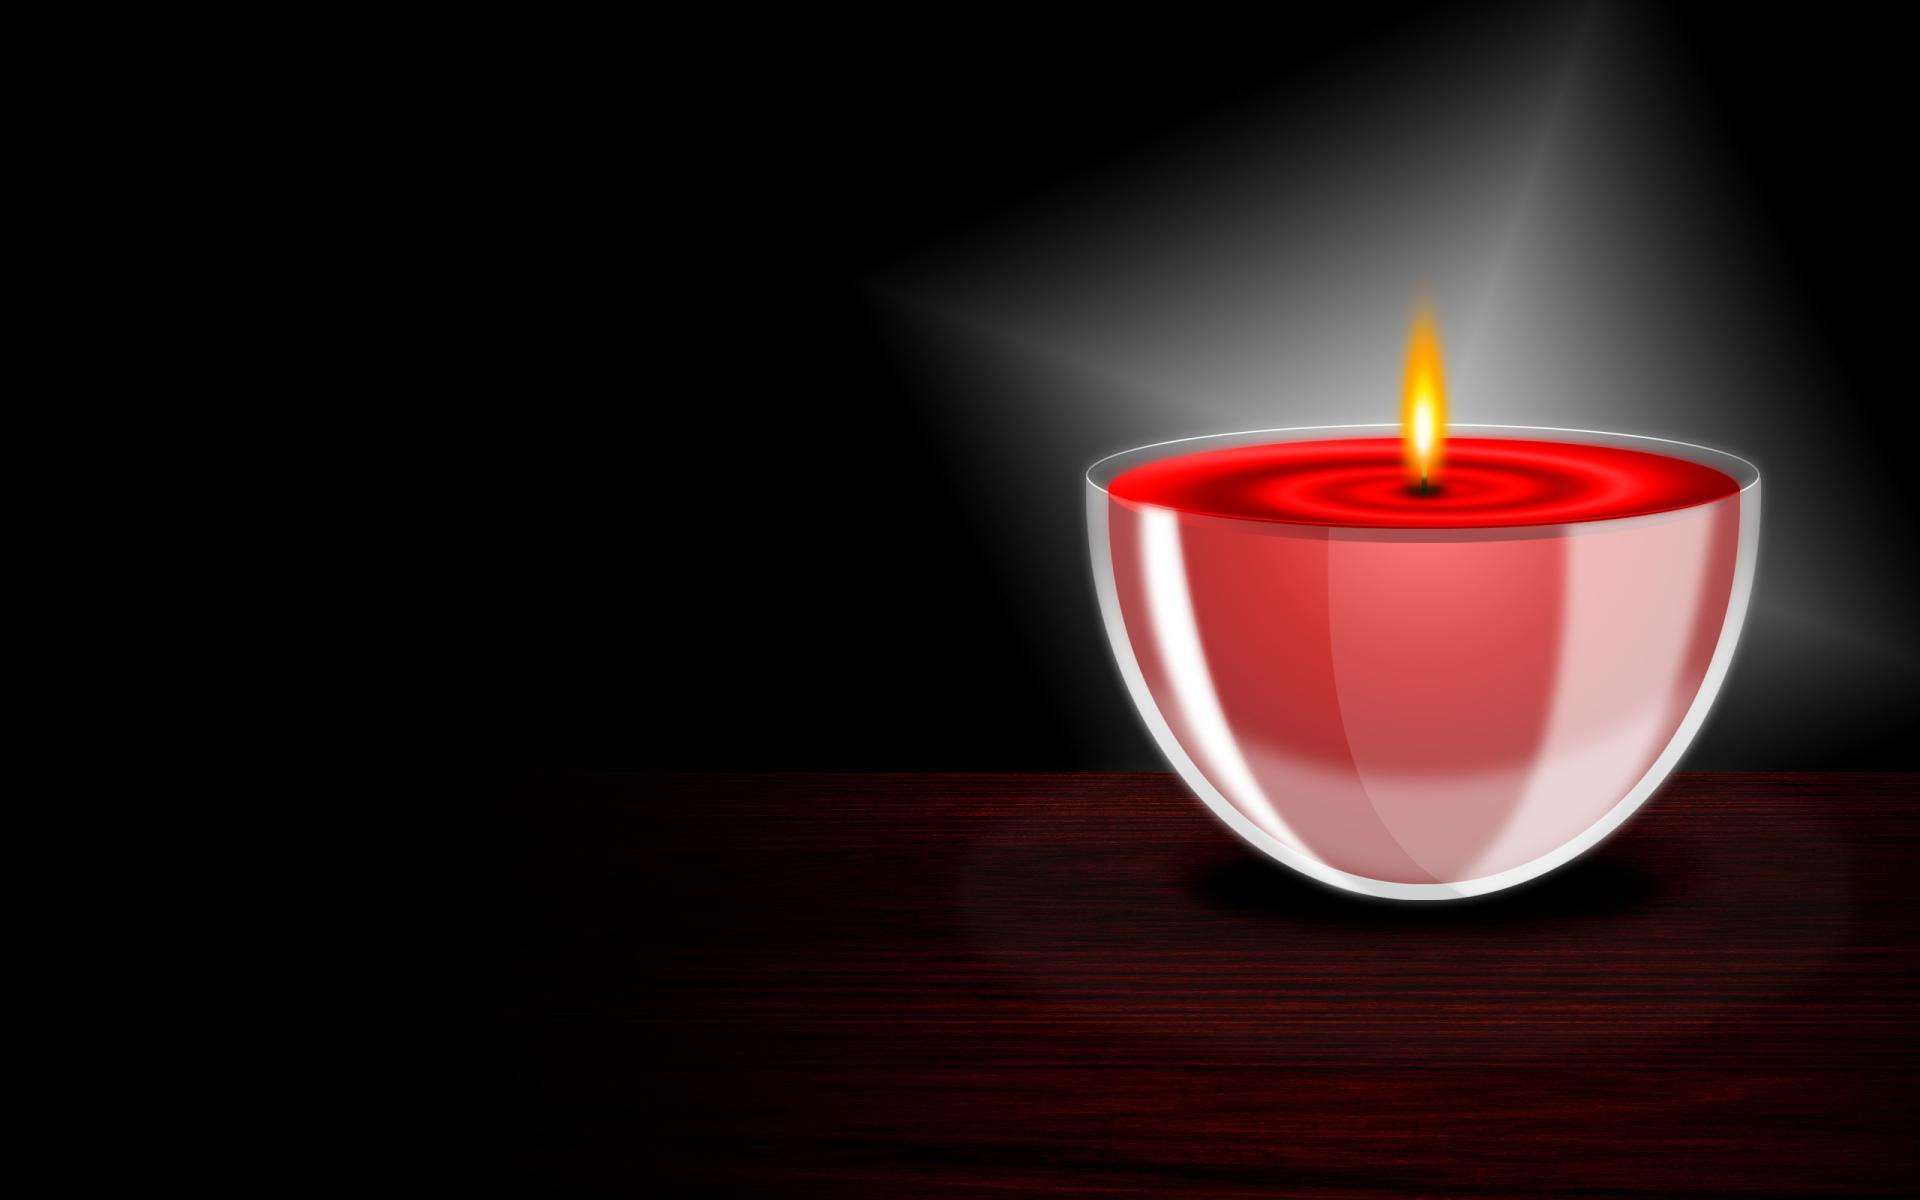 Candle Artistic wallpapers HD quality